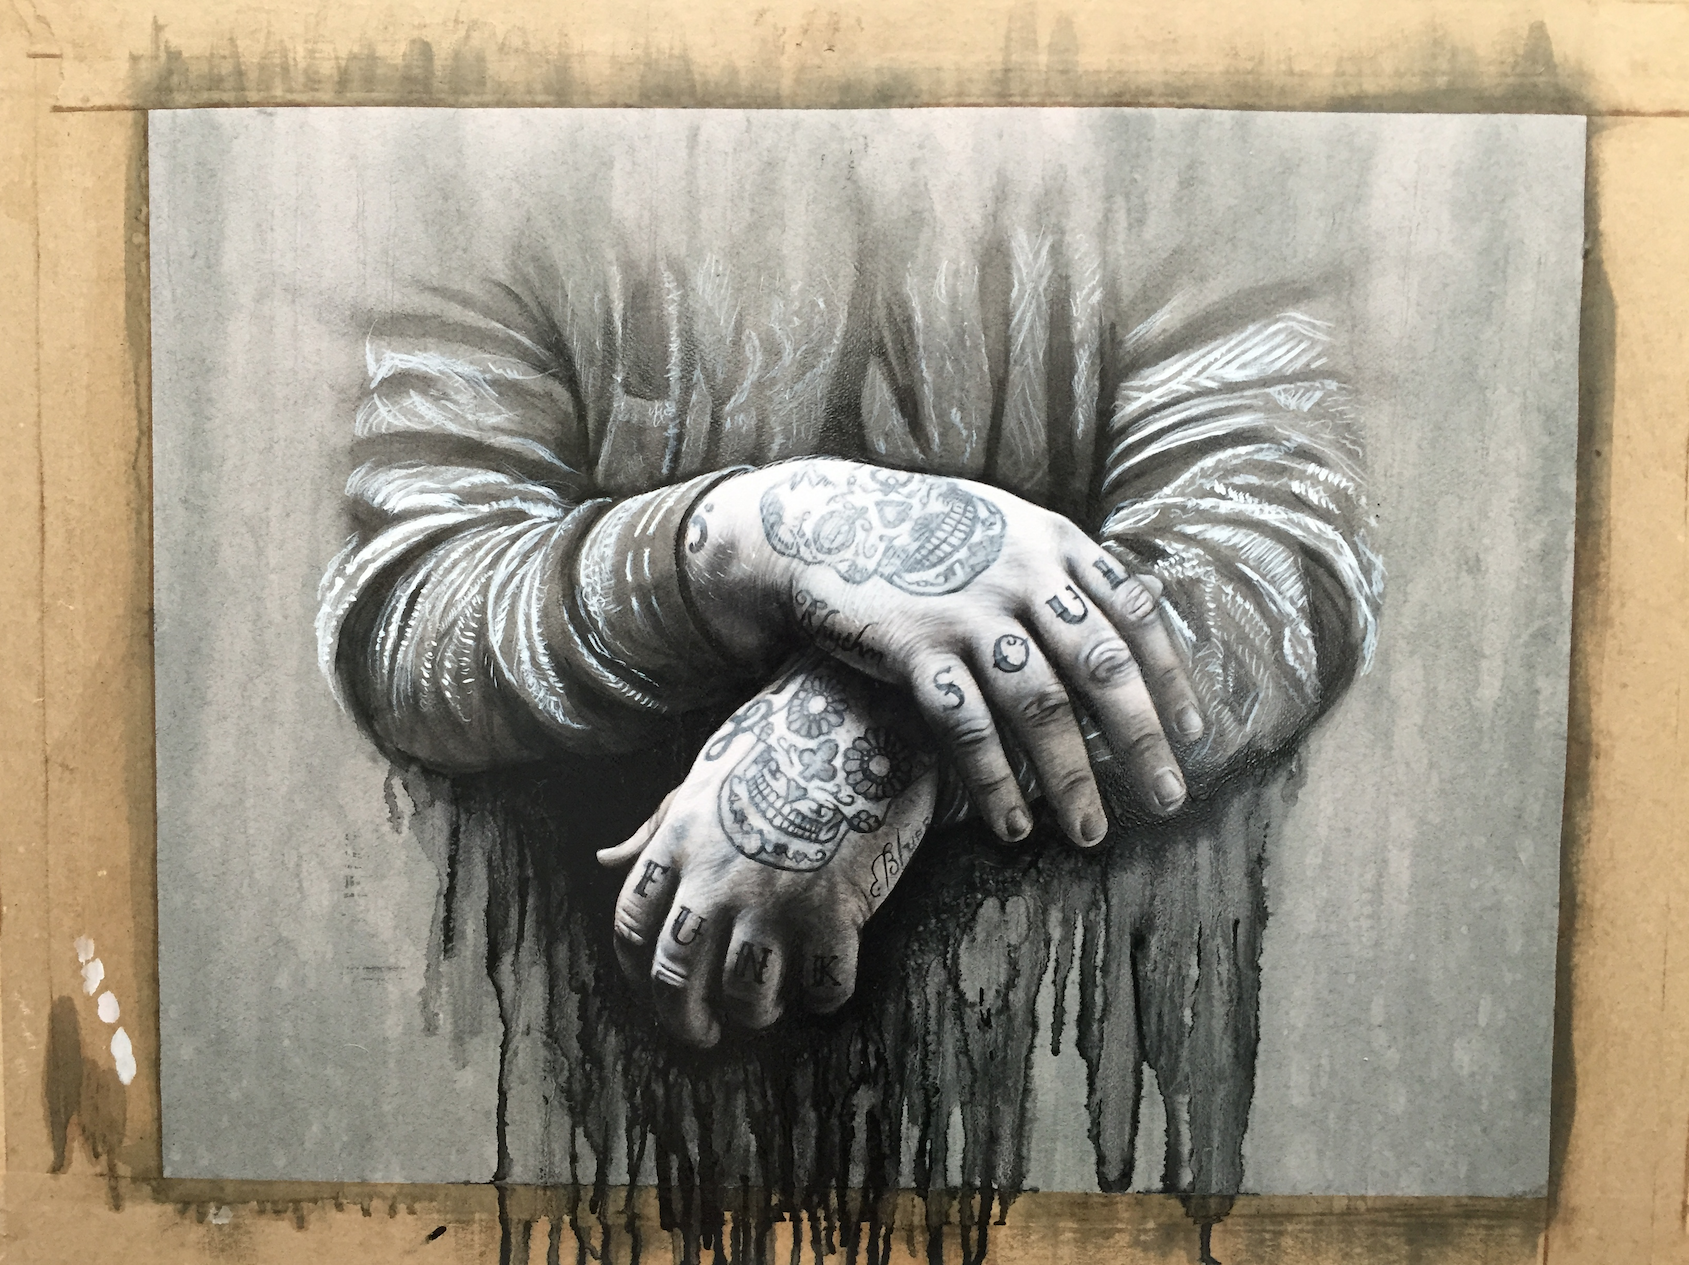 Rag'n'Bone Man 'Human' single artwork by Ben Ashton